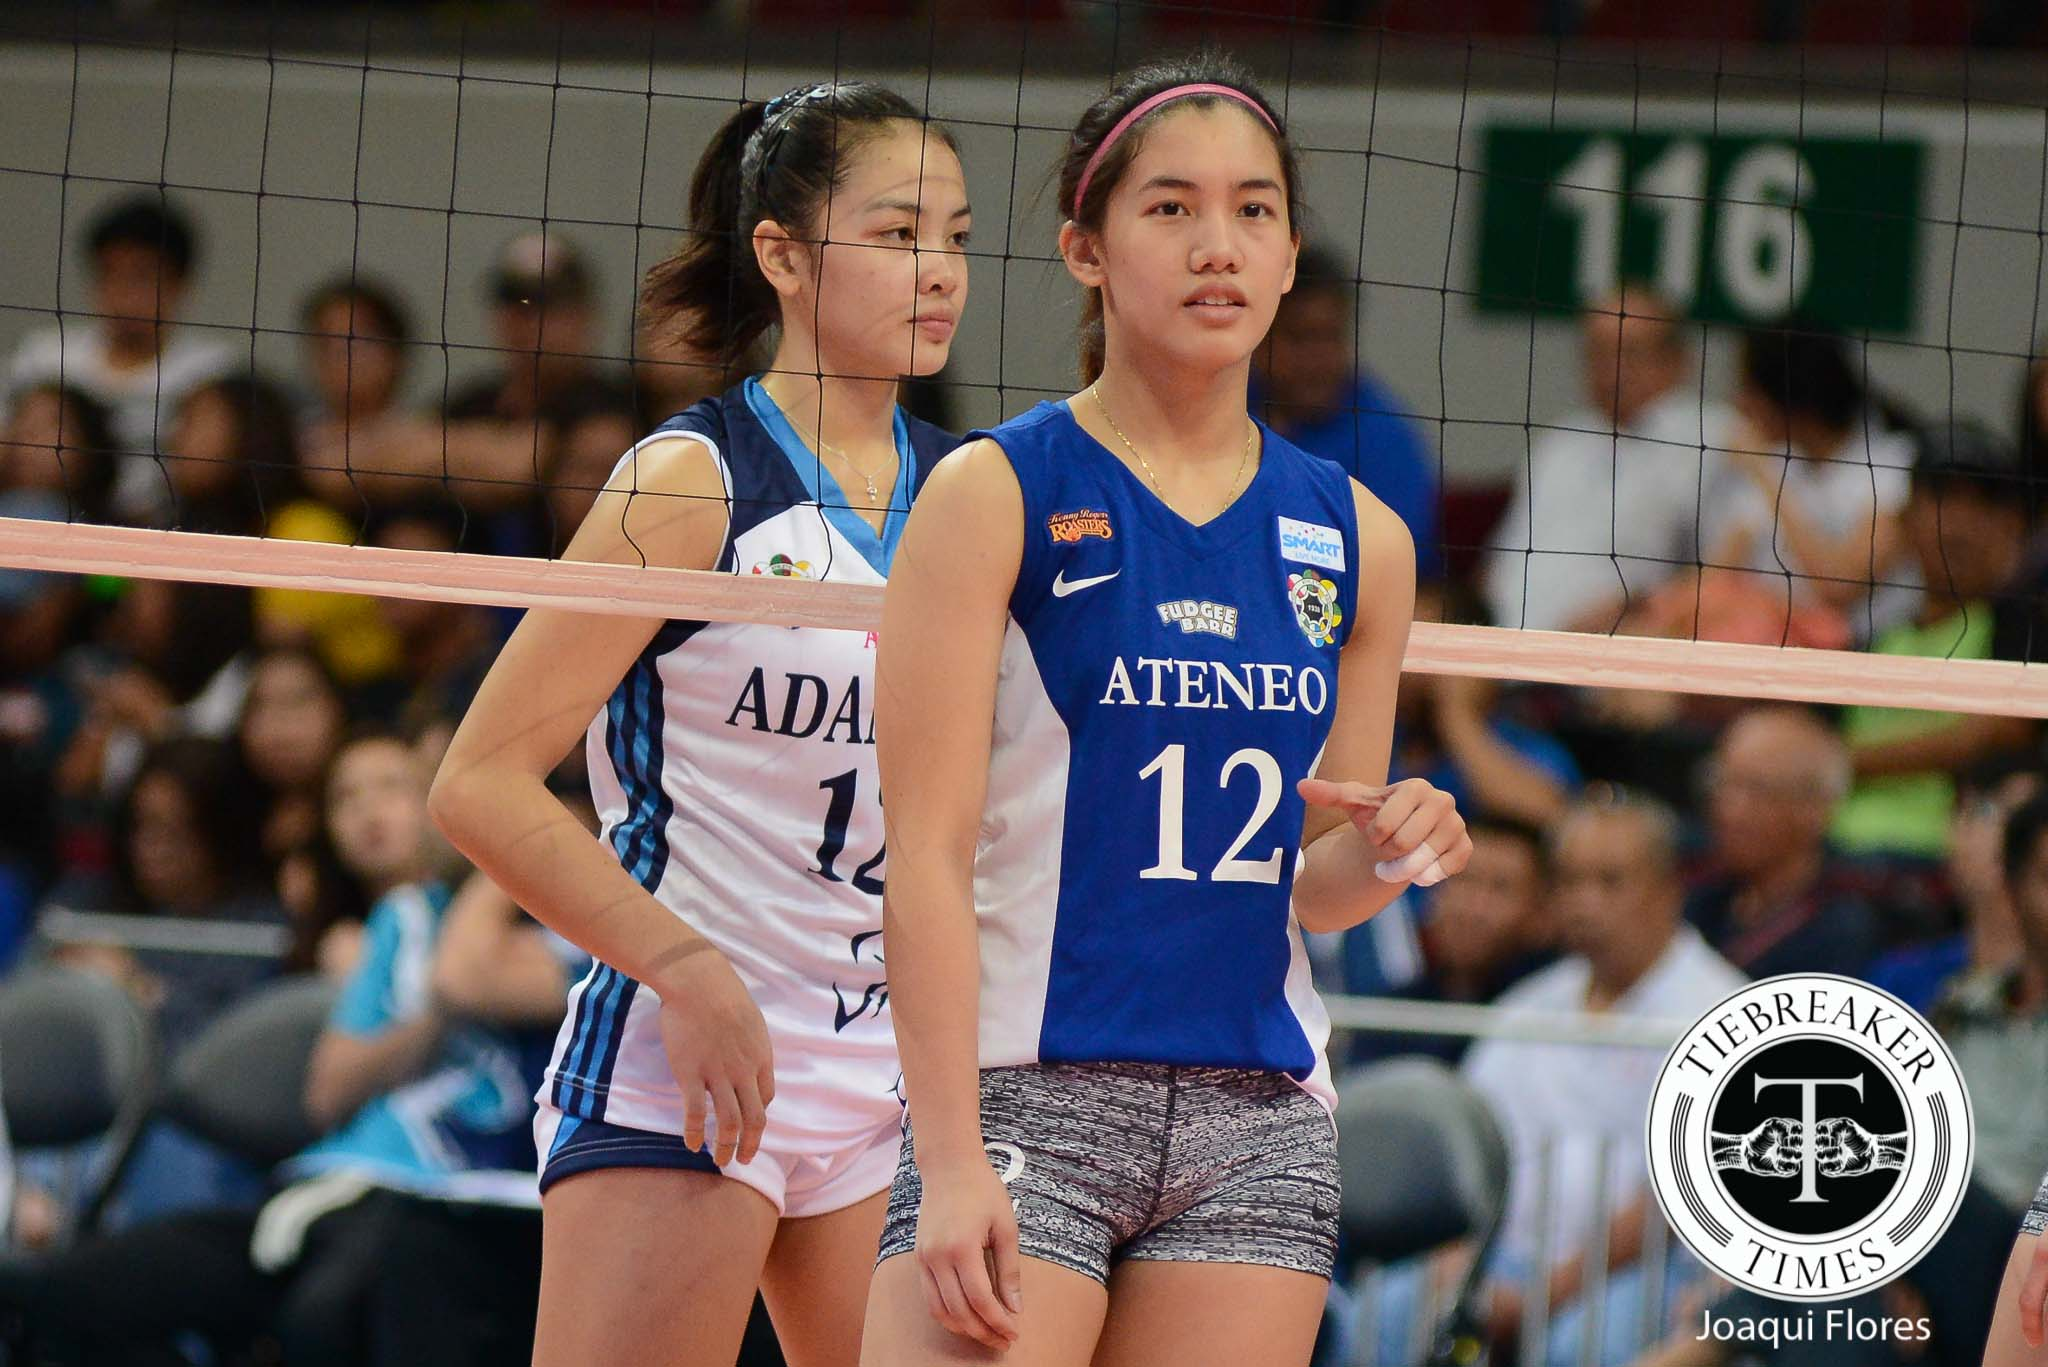 Philippine Sports News - Tiebreaker Times Morado addresses Fajardo comparisons, La Salle match ADMU News UAAP Volleyball  UAAP Season 78 Women's Volleyball UAAP Season 78 Jia Morado Ateneo Women's Volleyball